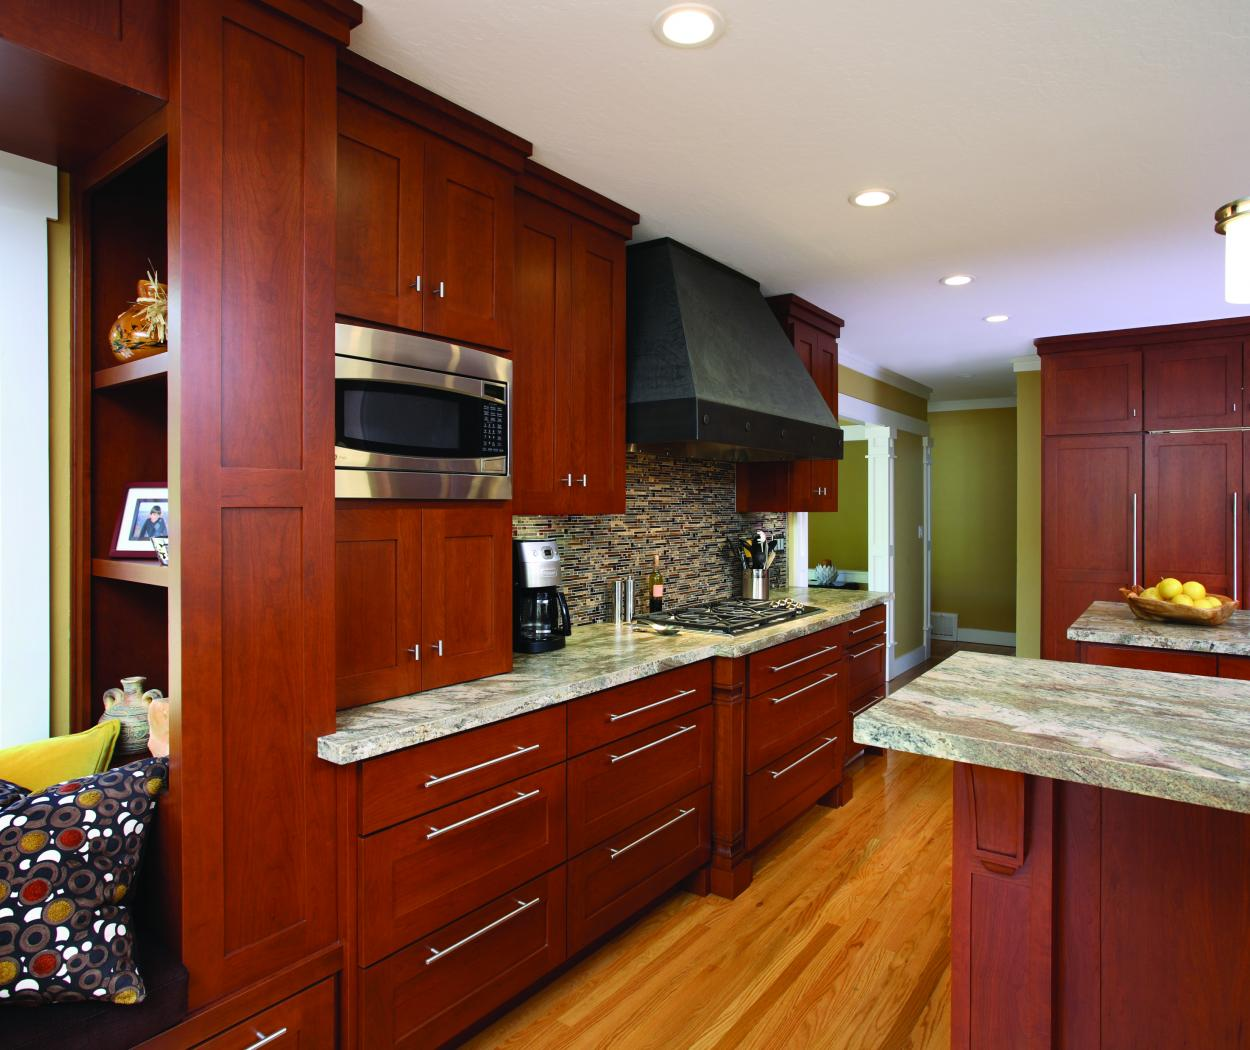 Transitional Stained, Shaker Style Kitchen with a Built-In Bench Seat, Beautiful Granite Countertops and Stainless Steel Appliances